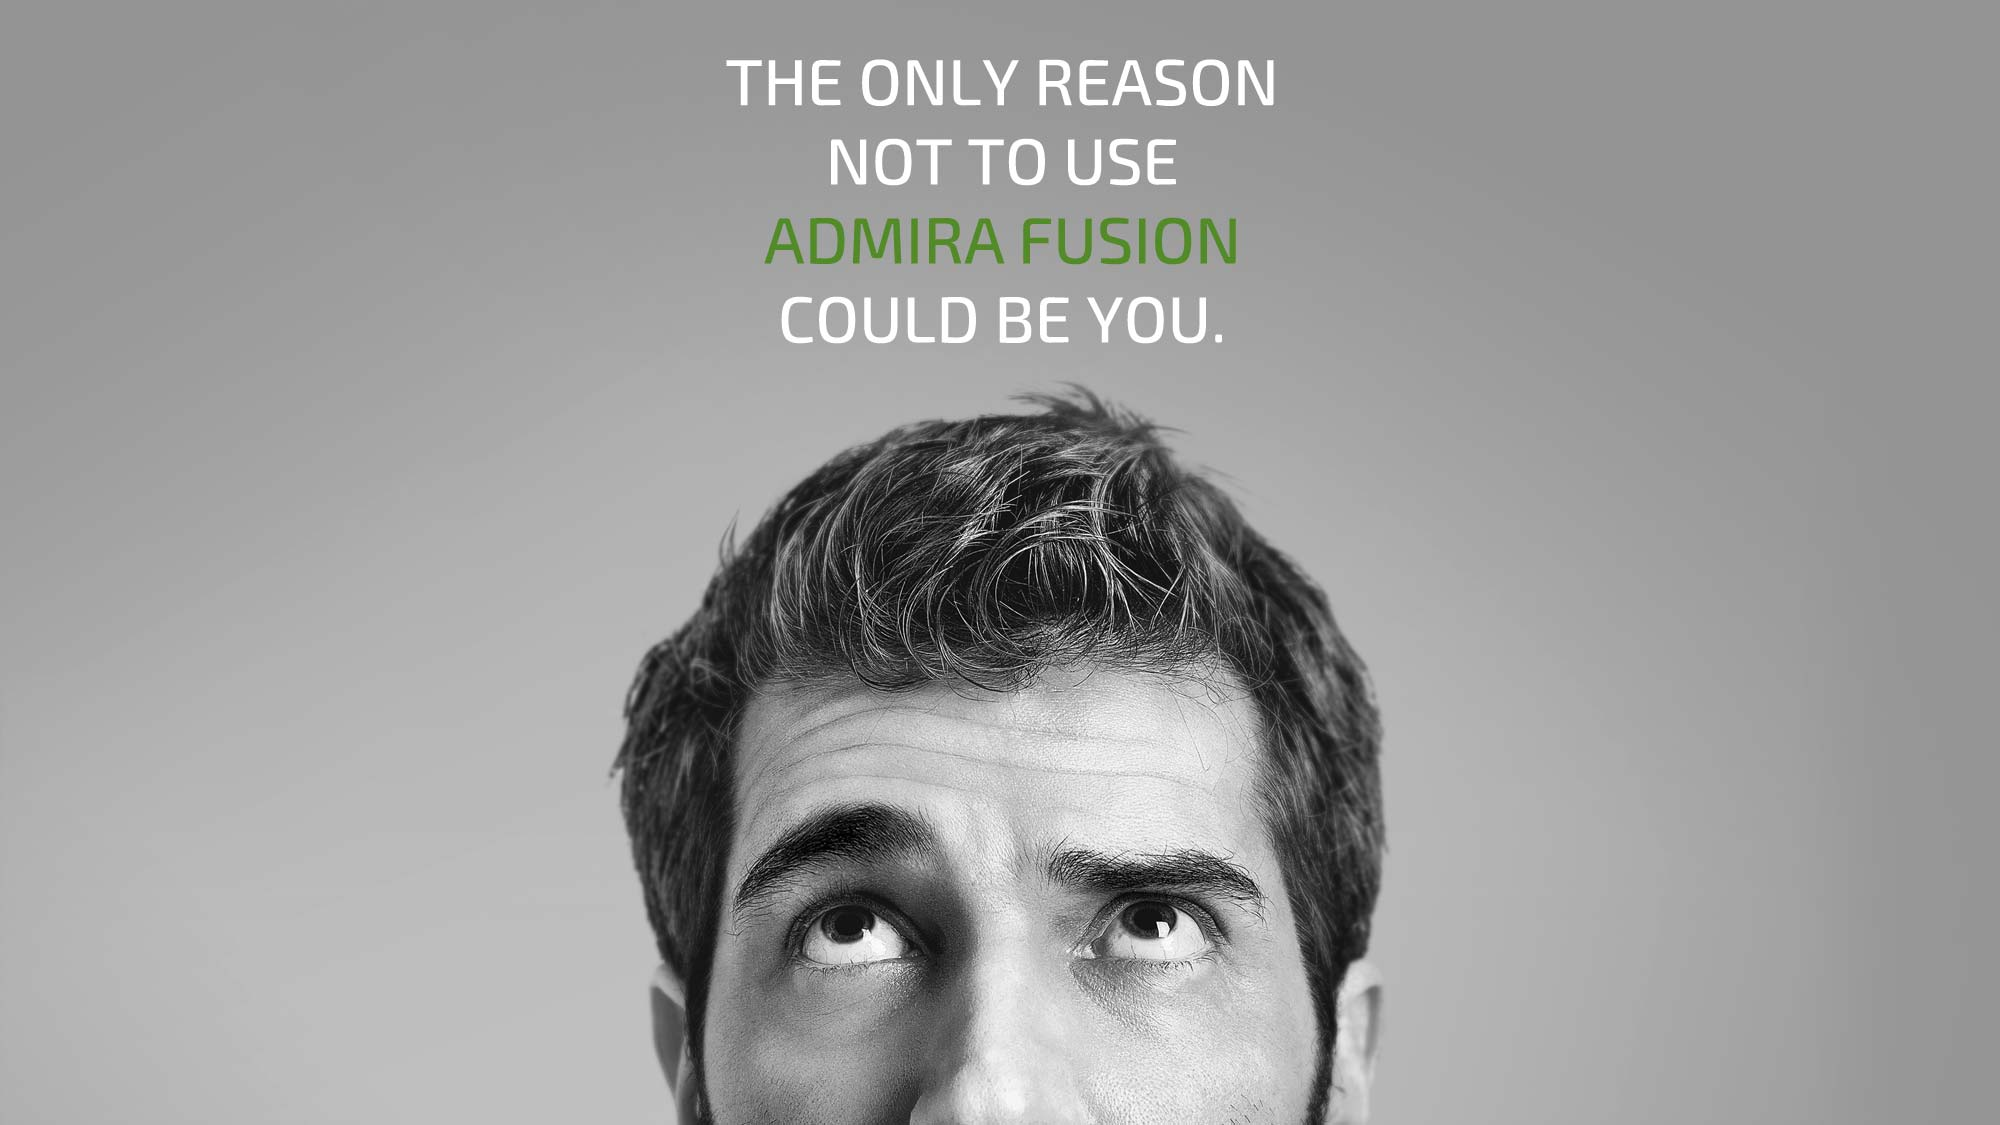 admira-fusion-background-1